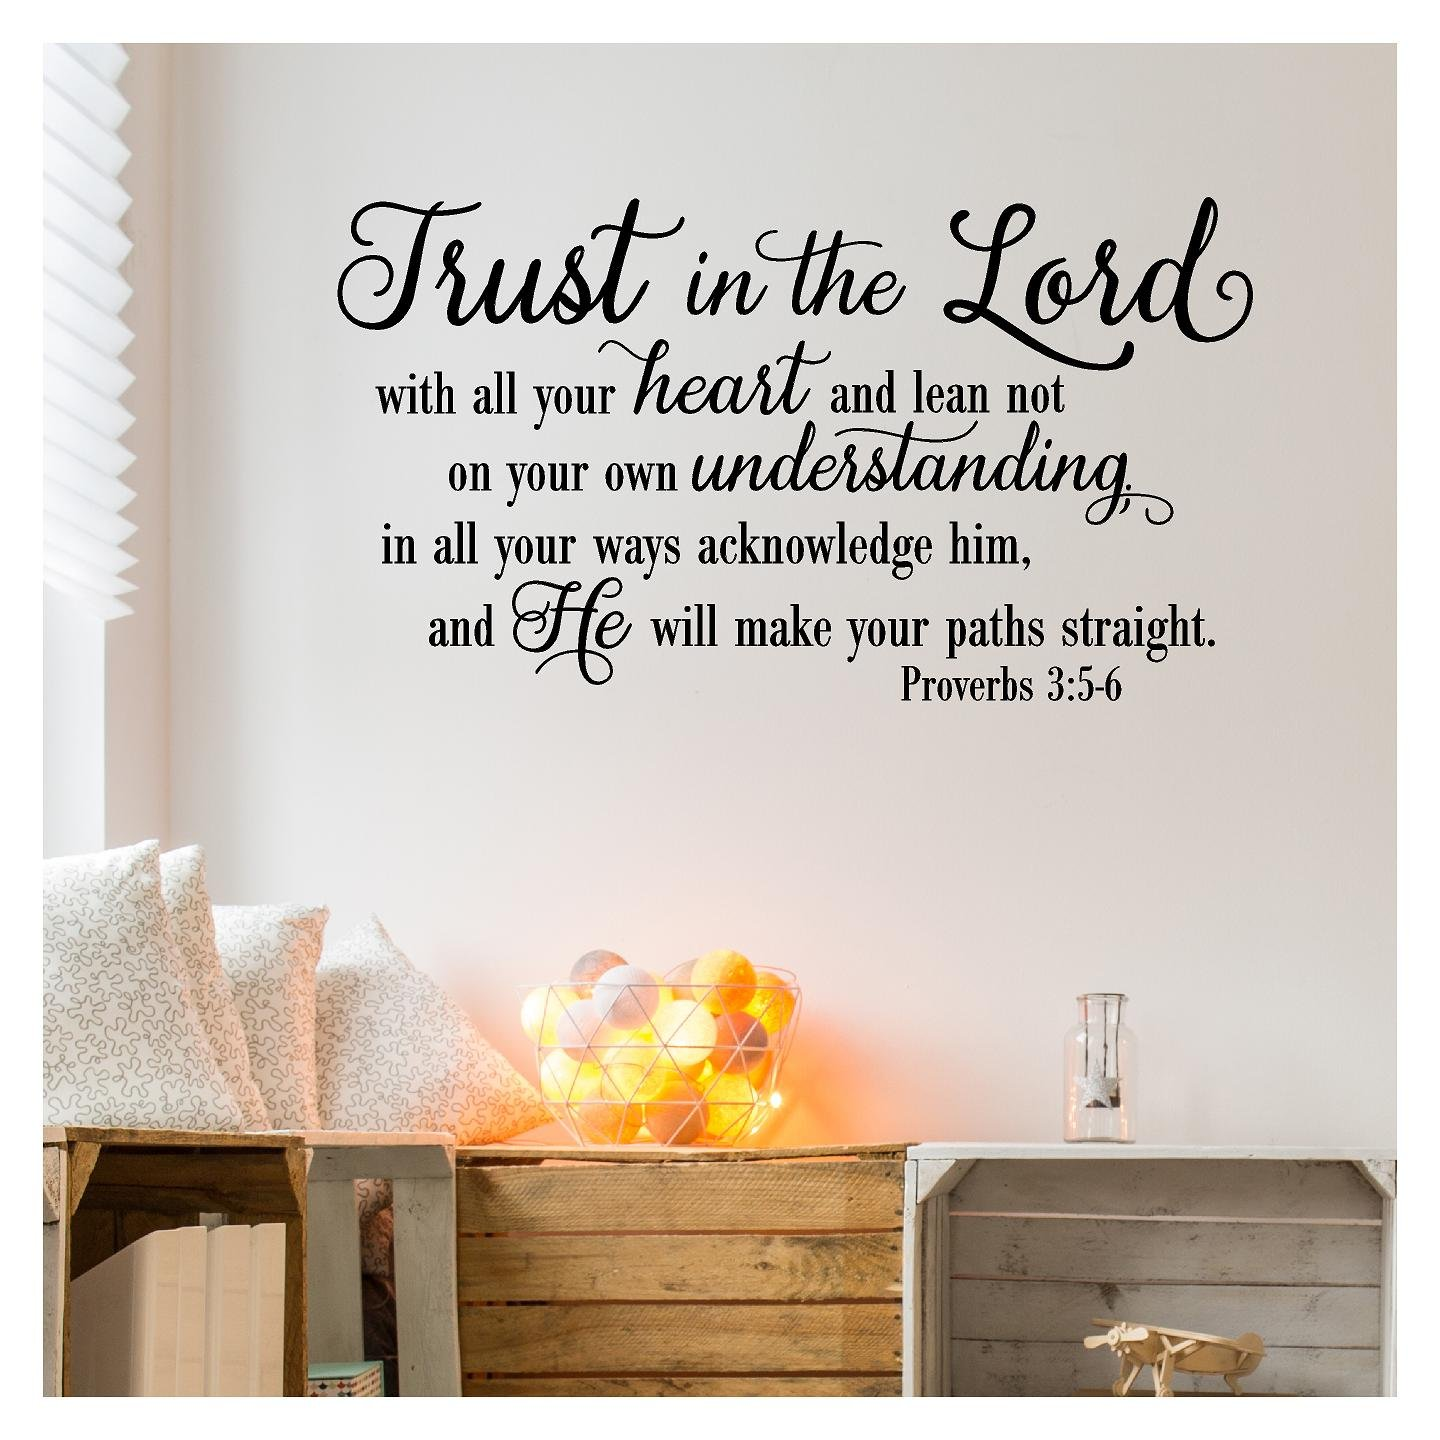 Trust in the Lord With All Your Heart..Proverbs 3:5-6 Vinyl Lettering Wall Decal Sticker (21''H x 38''L, Black)